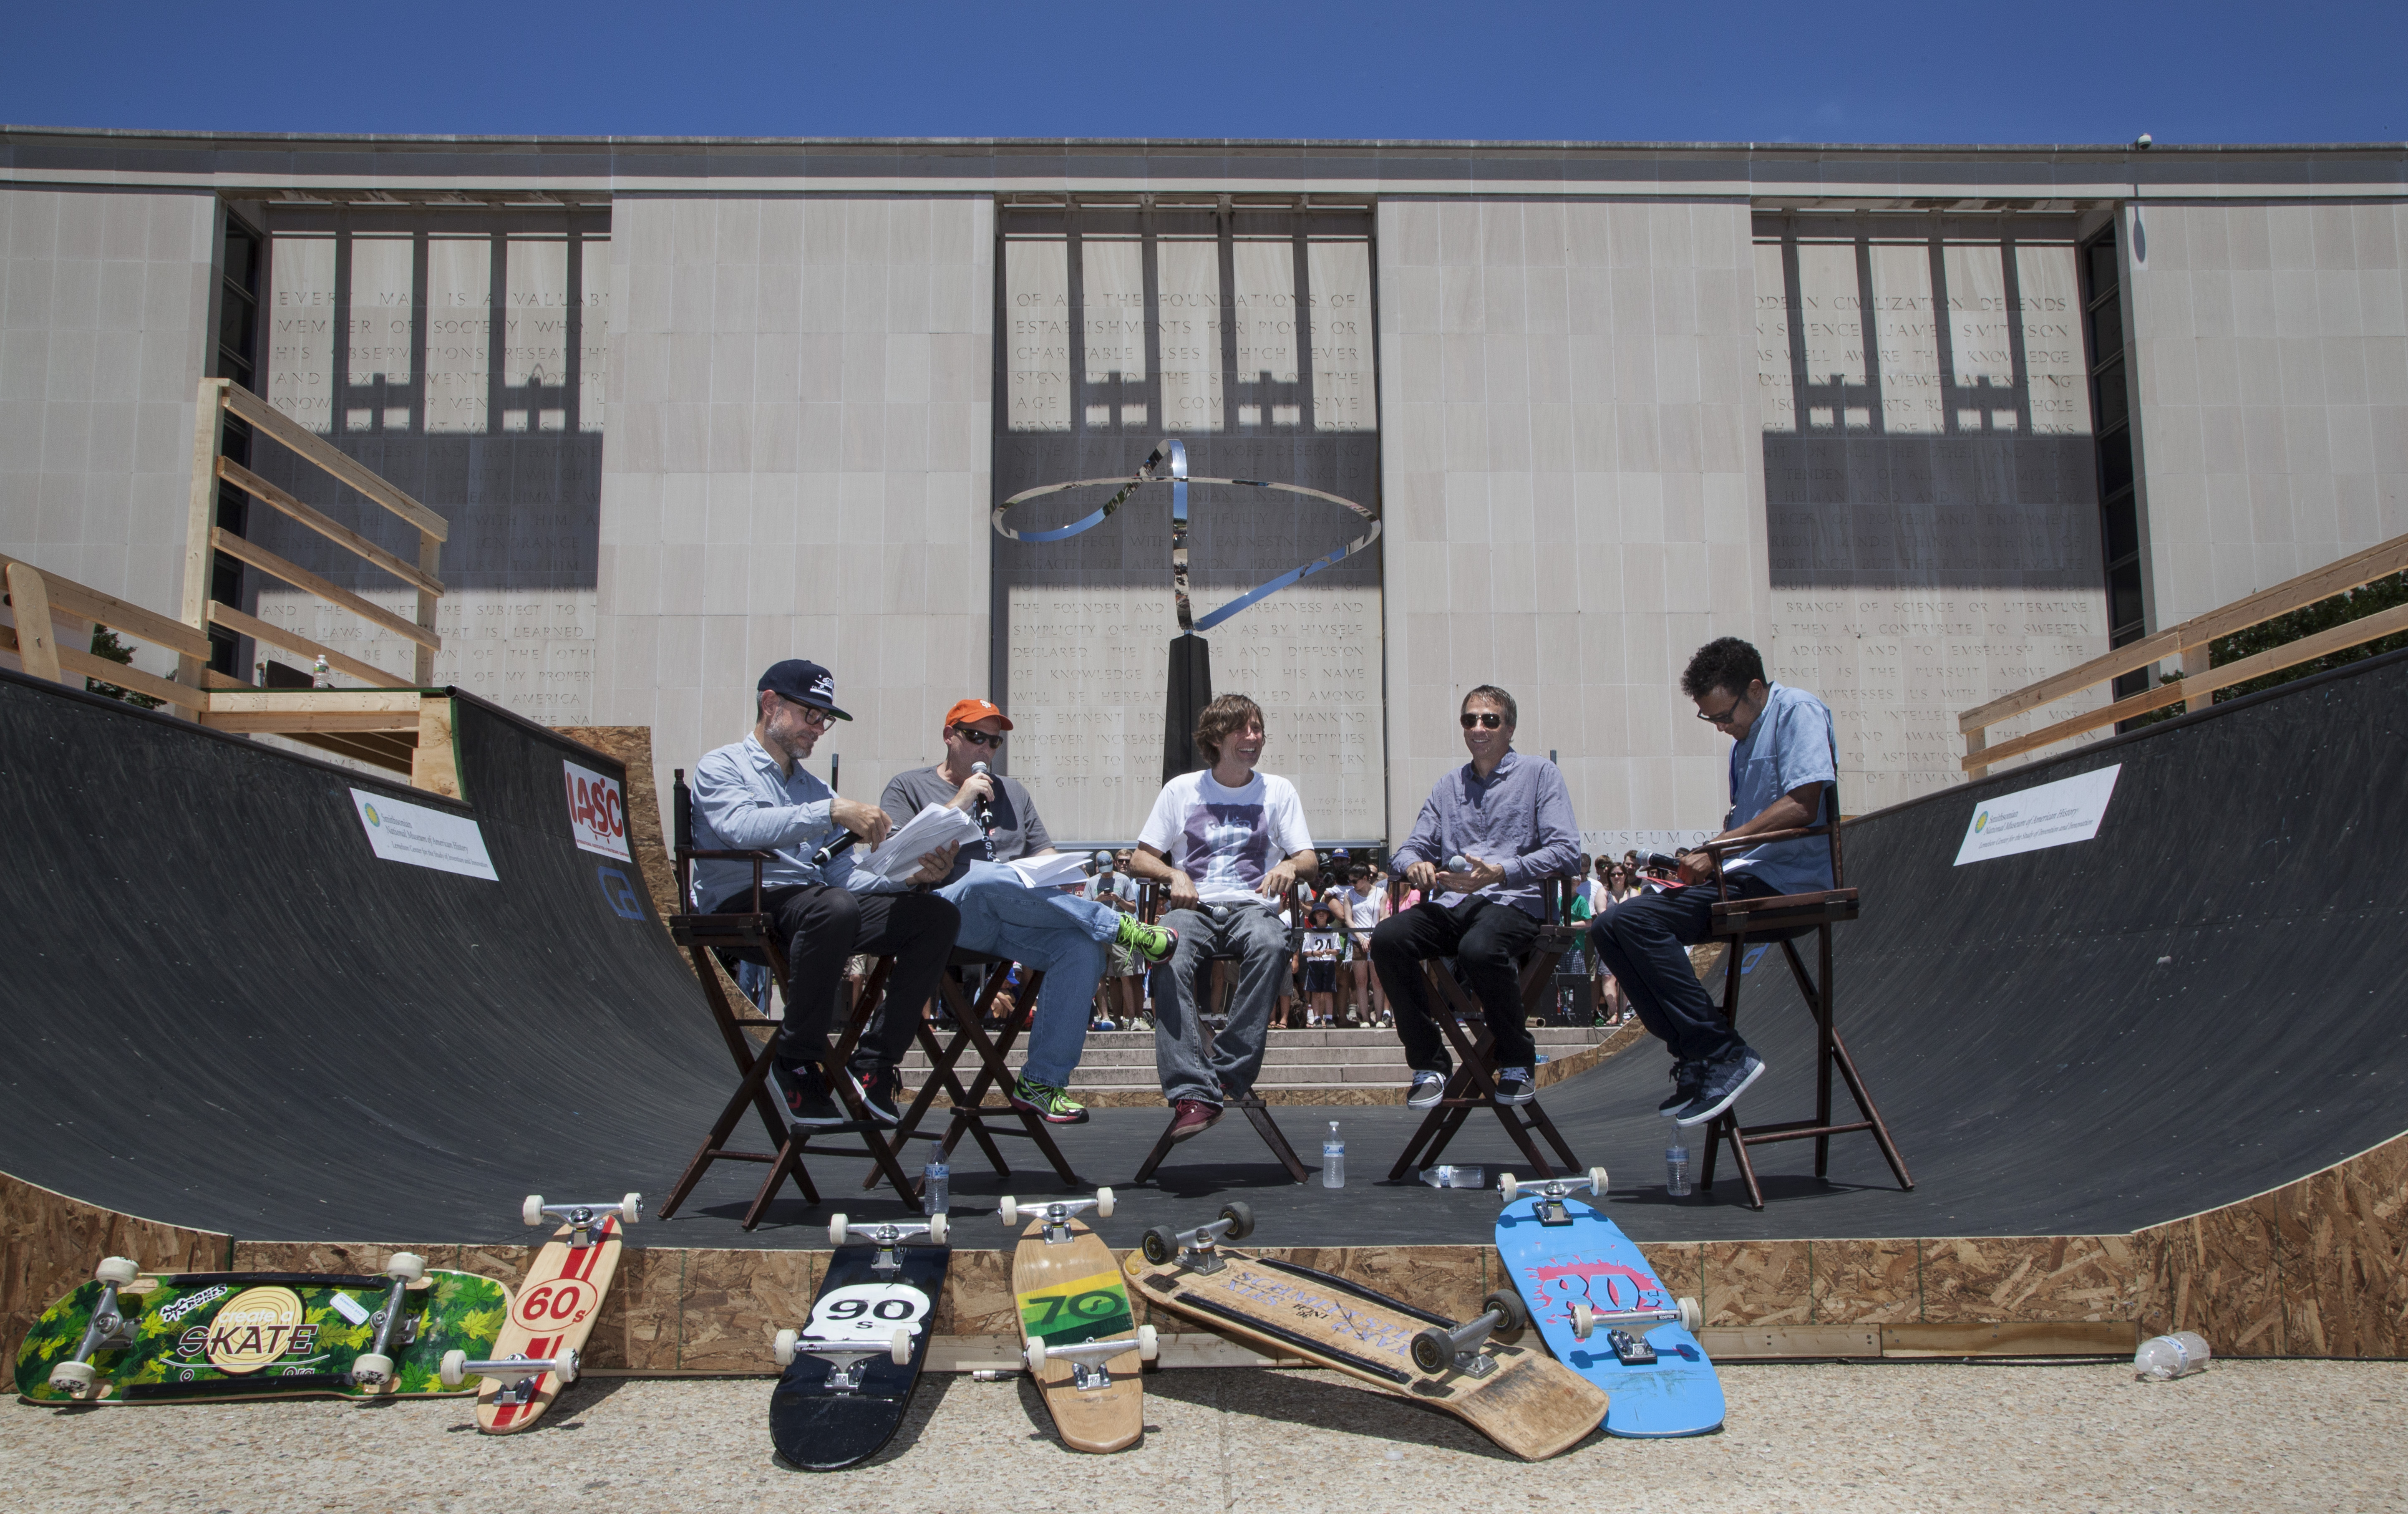 Ryan Clements, Jeffrey Brodie, Rodney Mullen, Tony Hawk, and Chris Pastras at Innoskate.